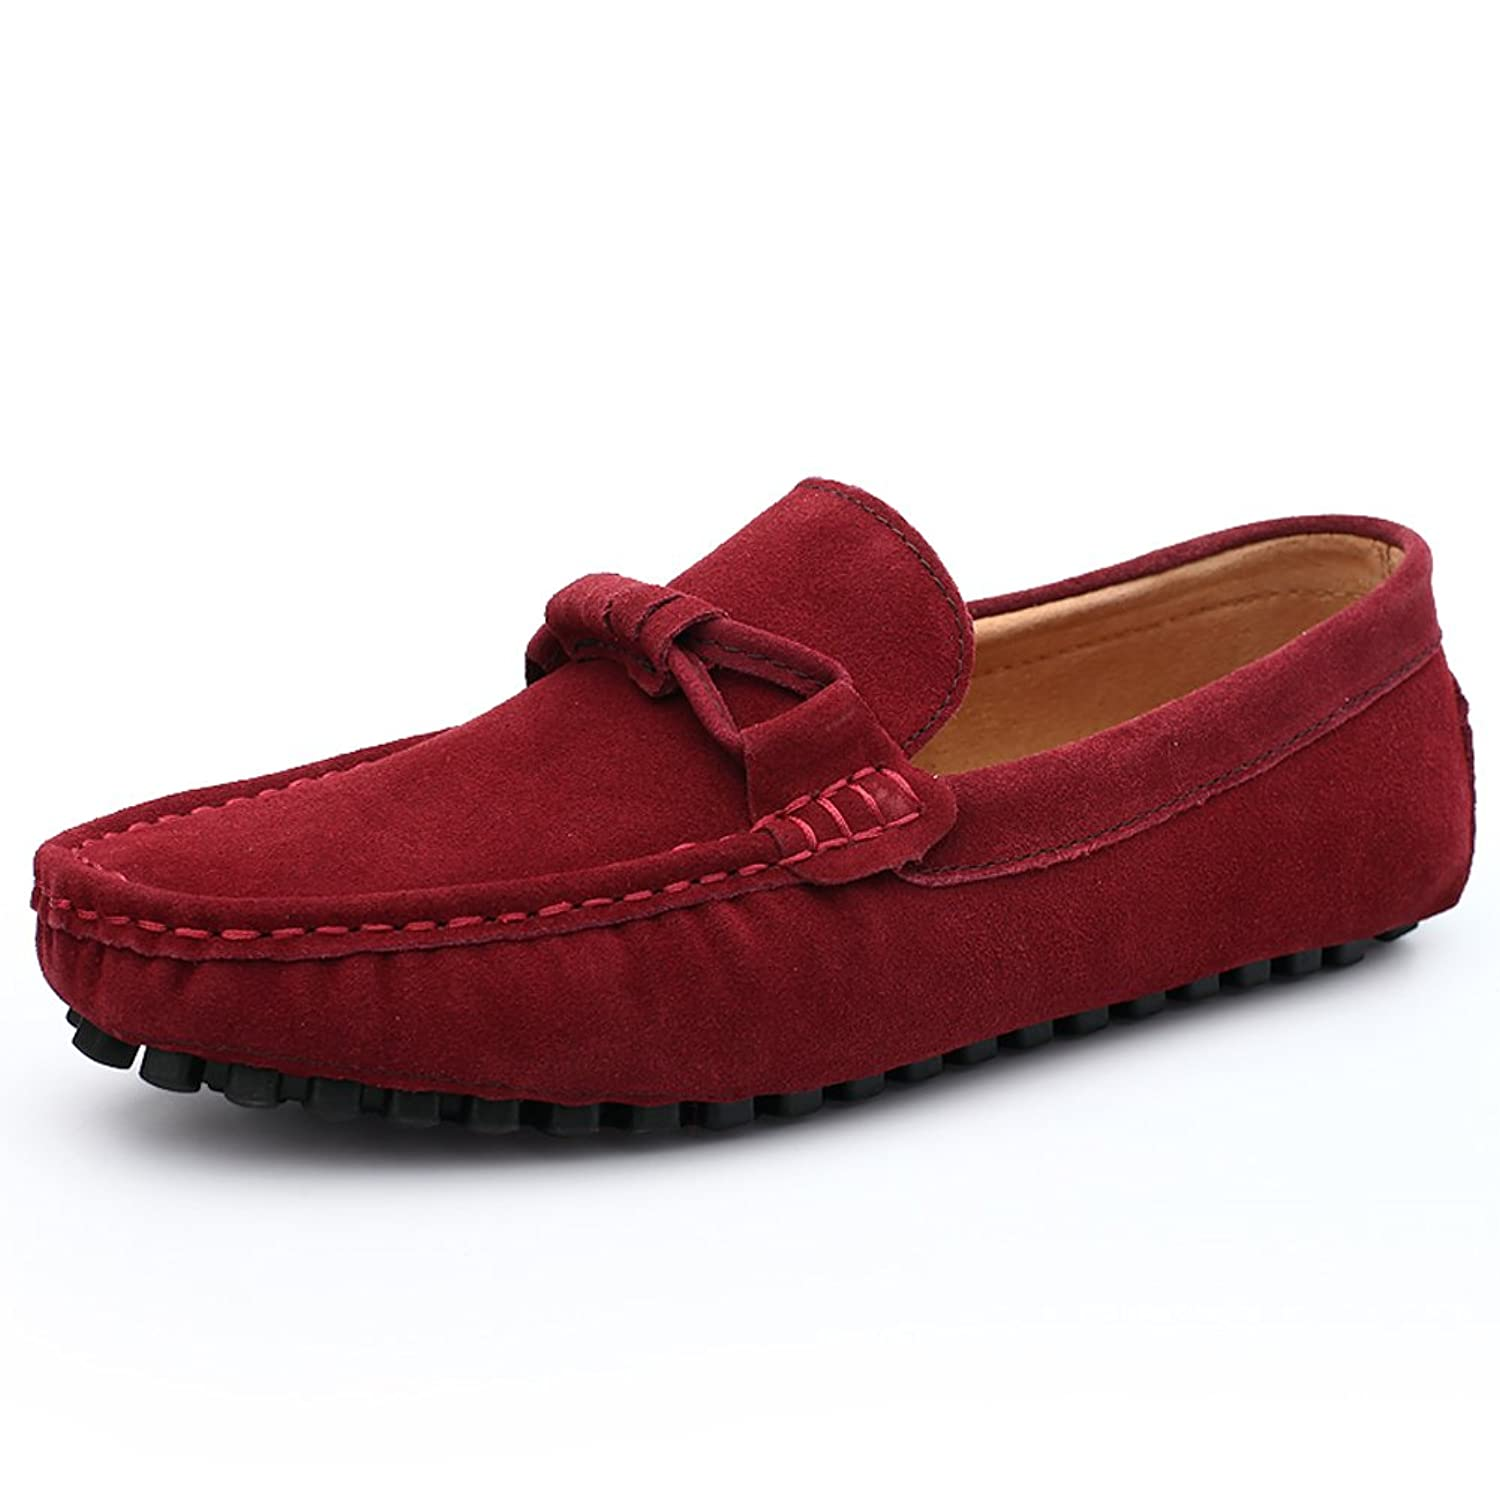 new Lucksender Mens New Summer Cow Leather Fashion Casual Loafer Shoes